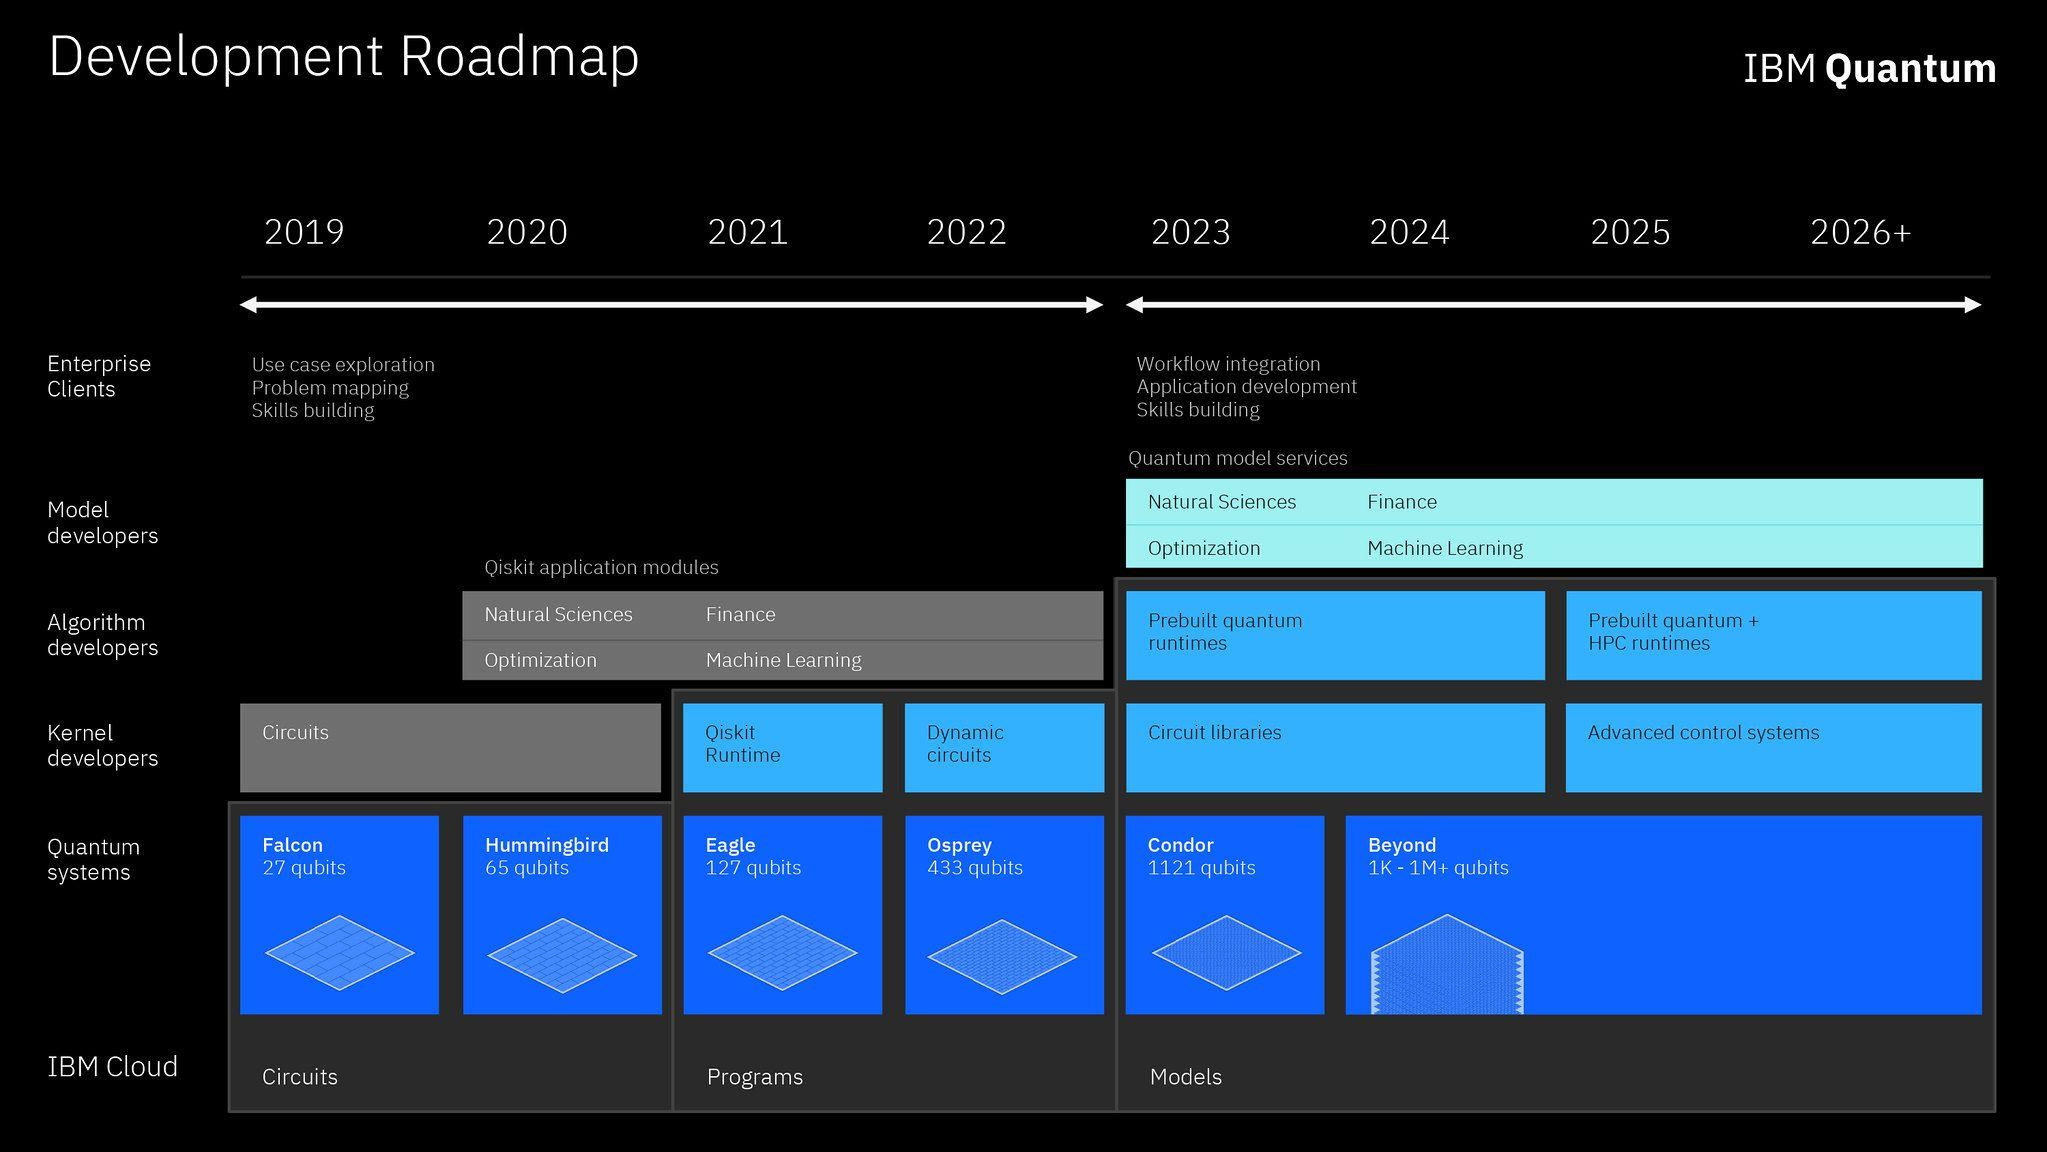 Graphic of IBM's roadmap for building an open quantum software ecosystem